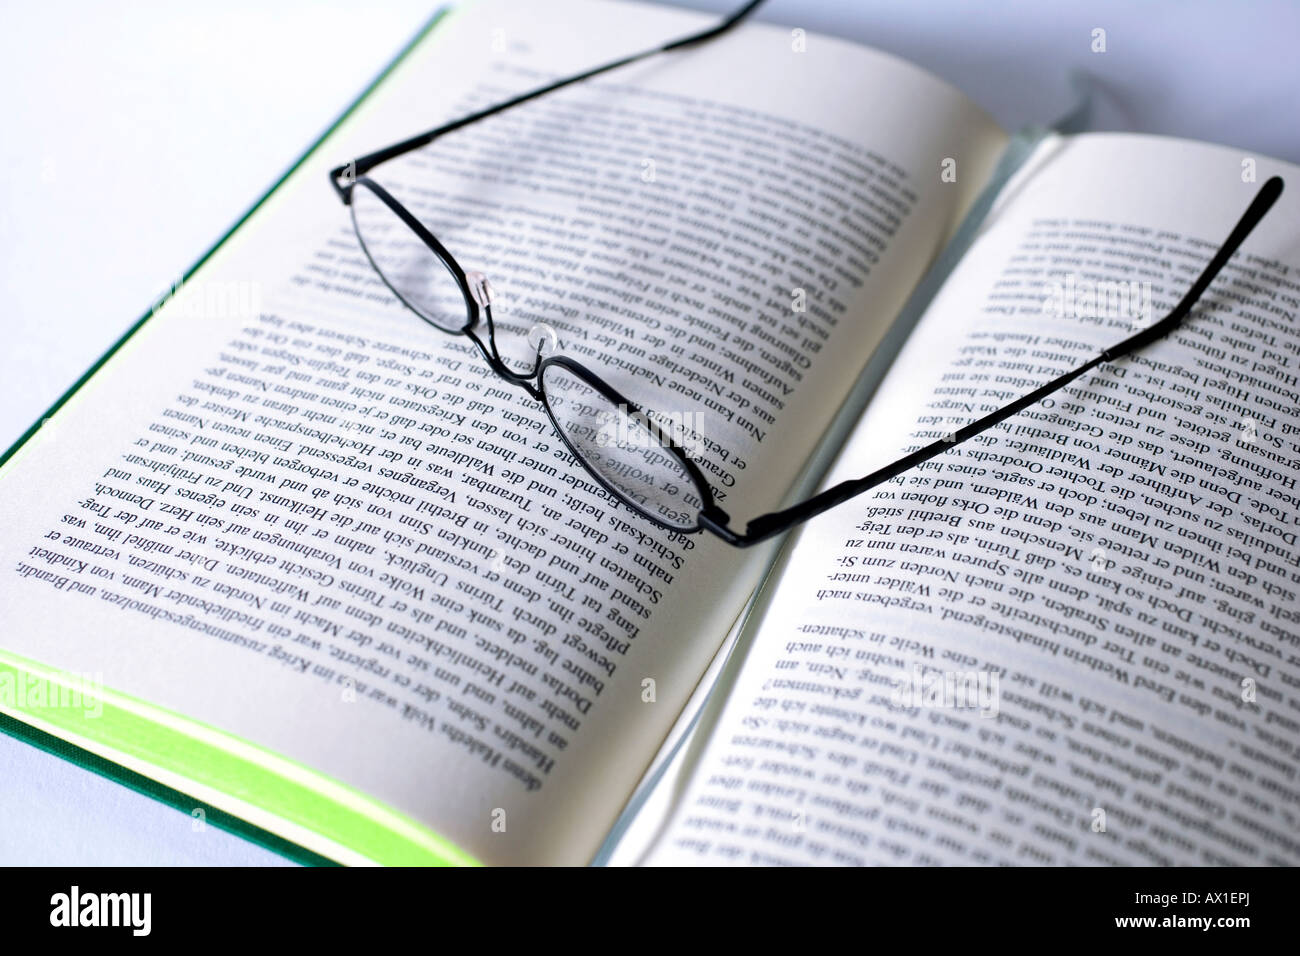 reading glasses on open book stock photos reading glasses on open